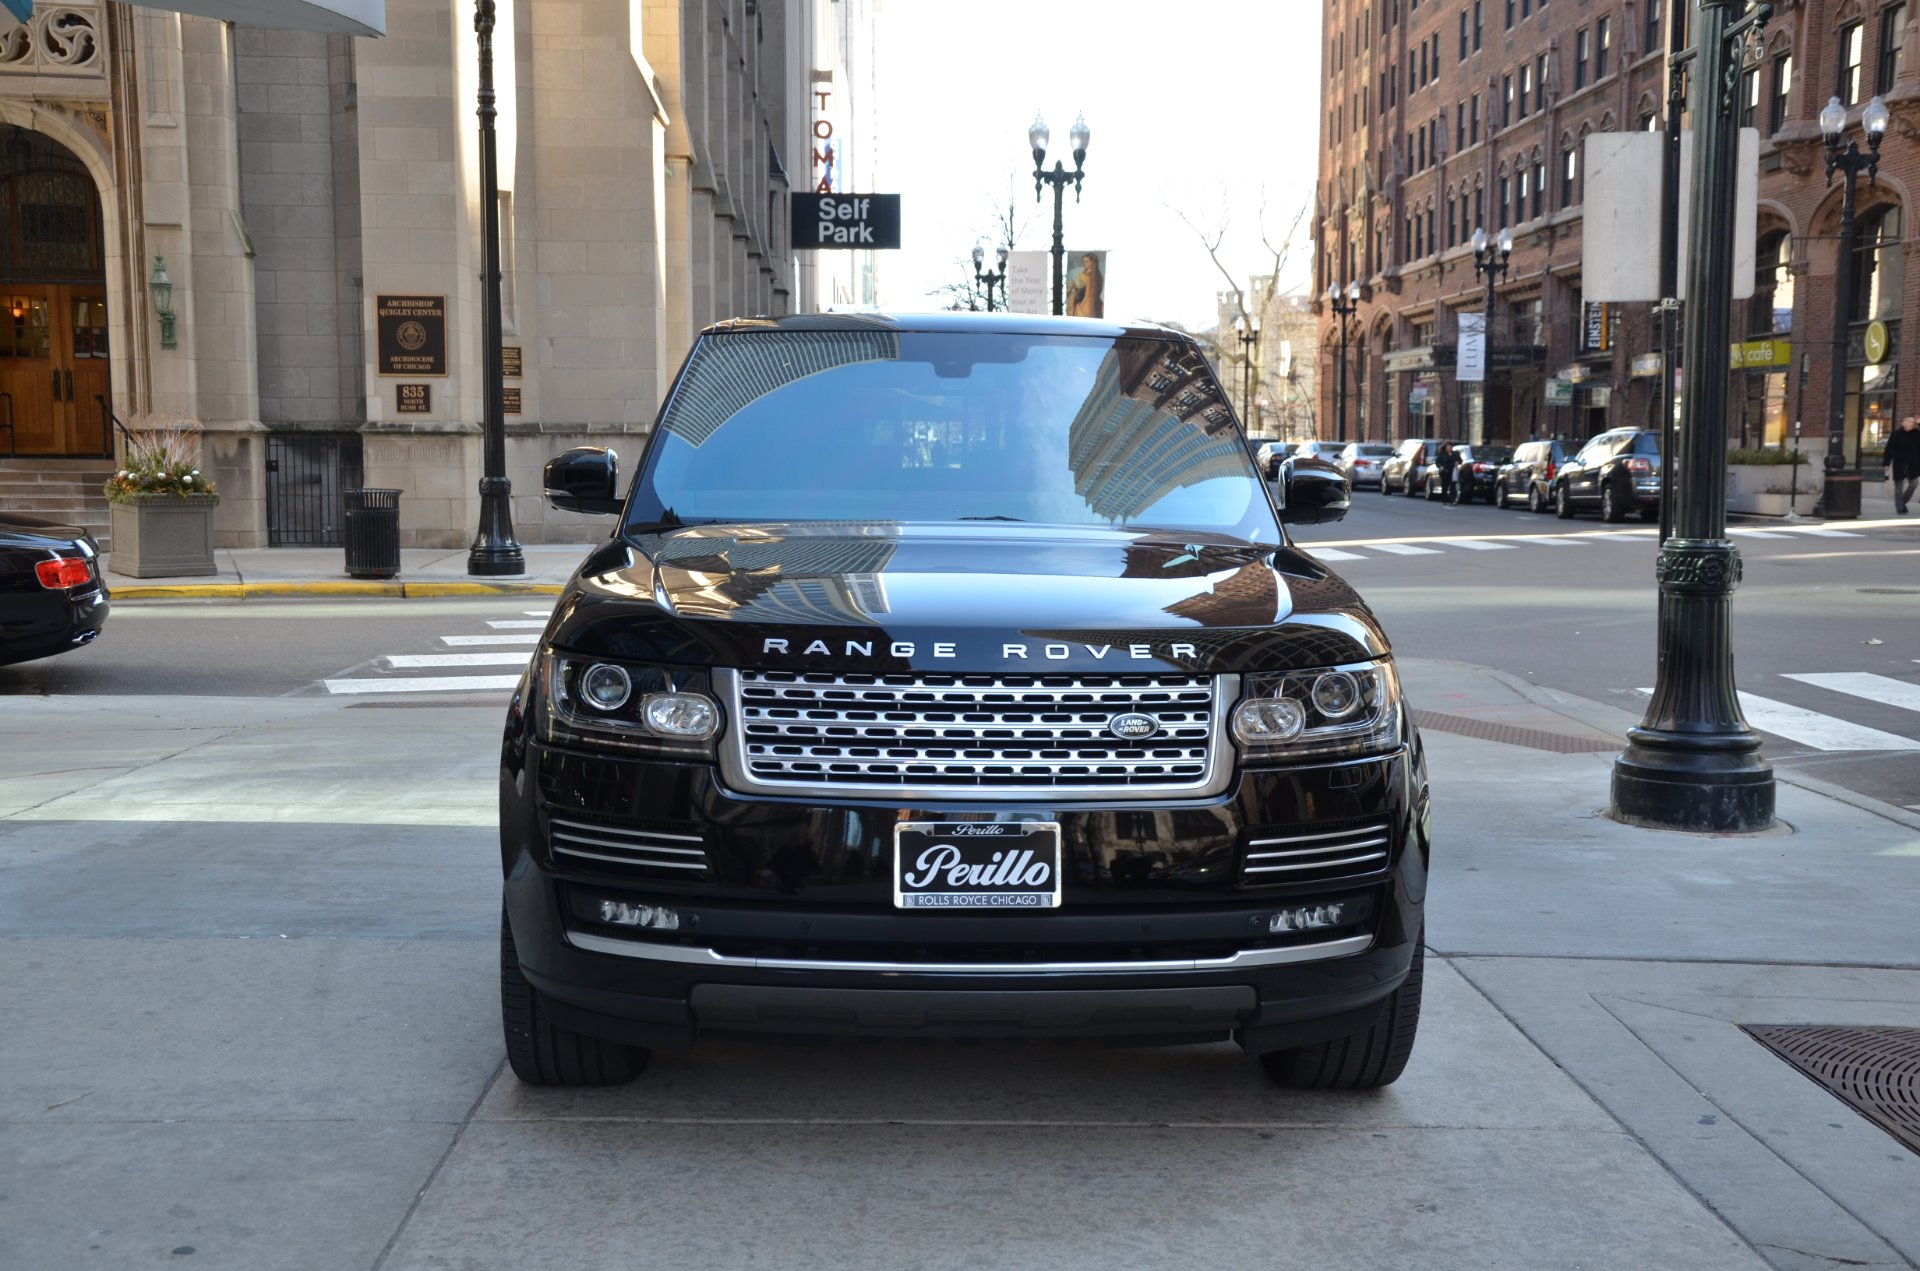 2014 Land Rover Range Rover Autobiography LWB Stock B887A for sale